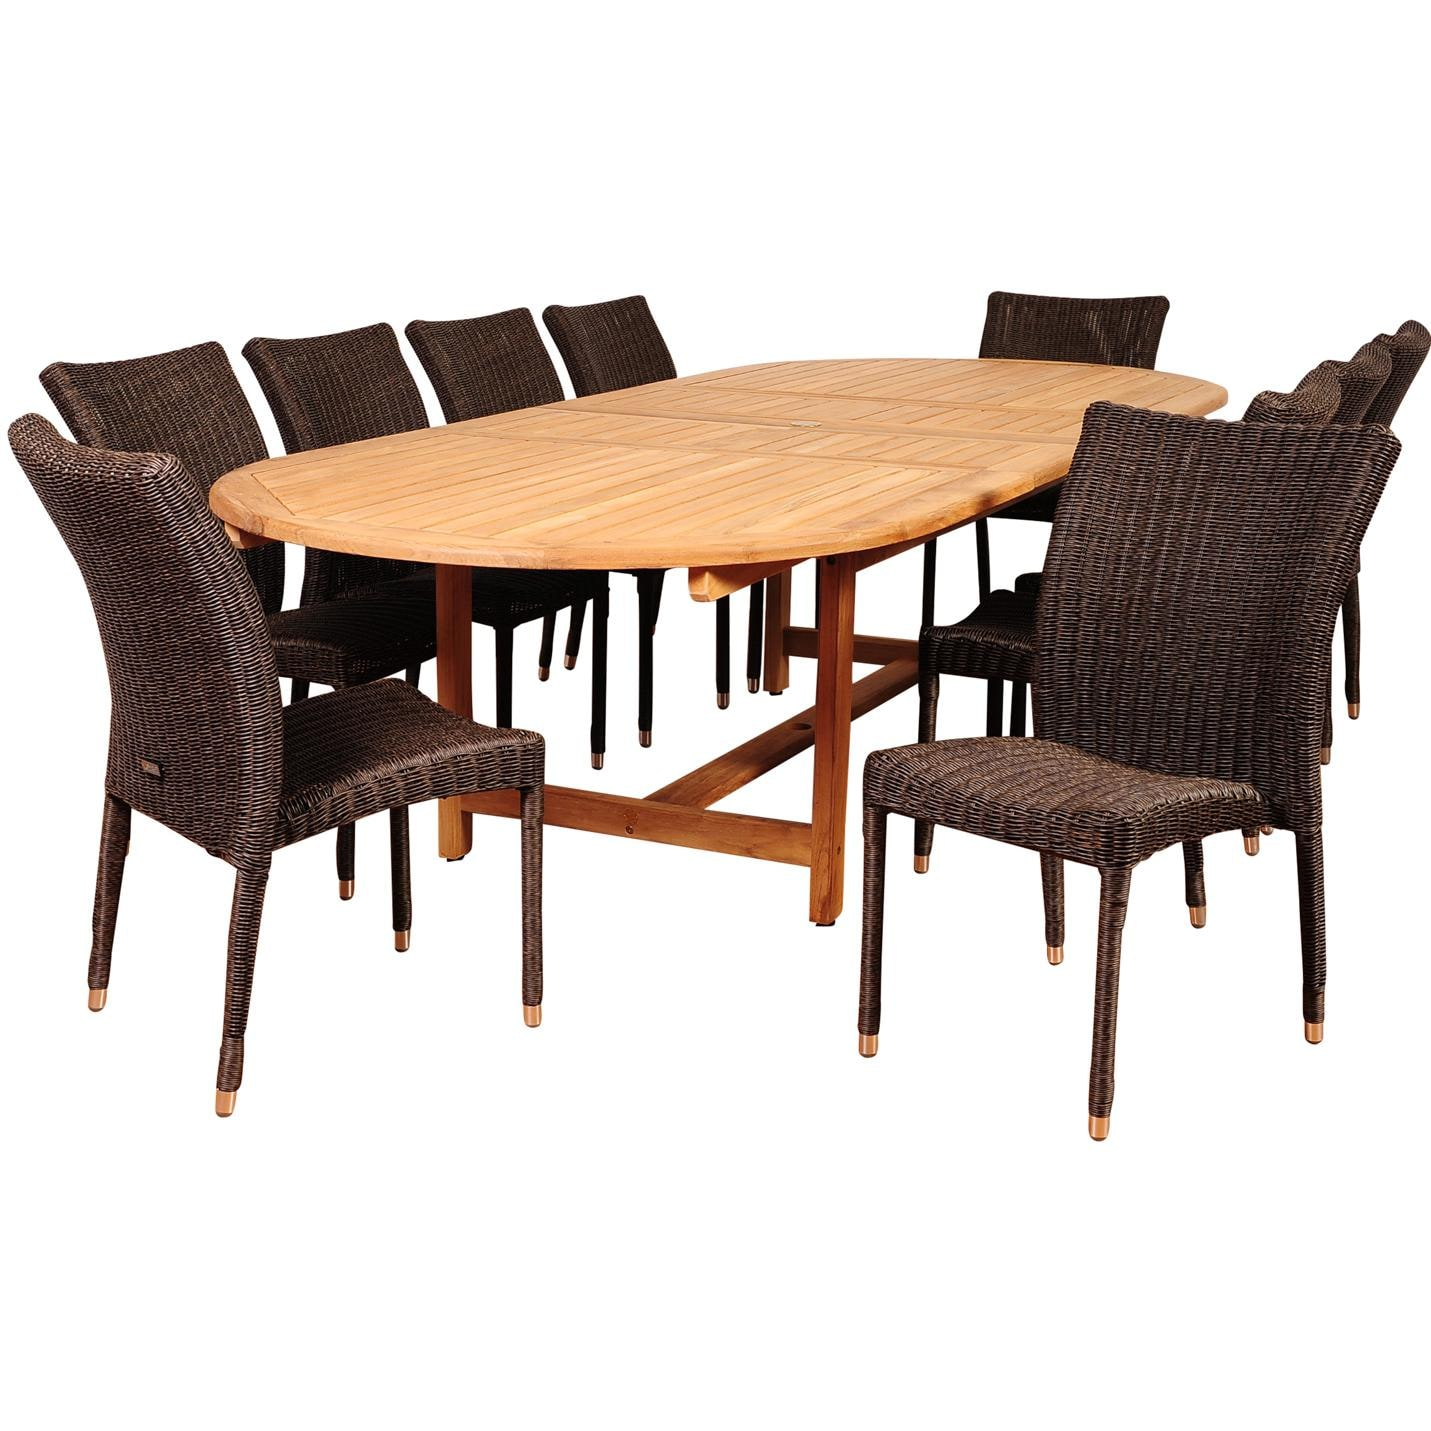 Amazonia district 10 person resin wicker patio dining set for Outdoor dining sets for 10